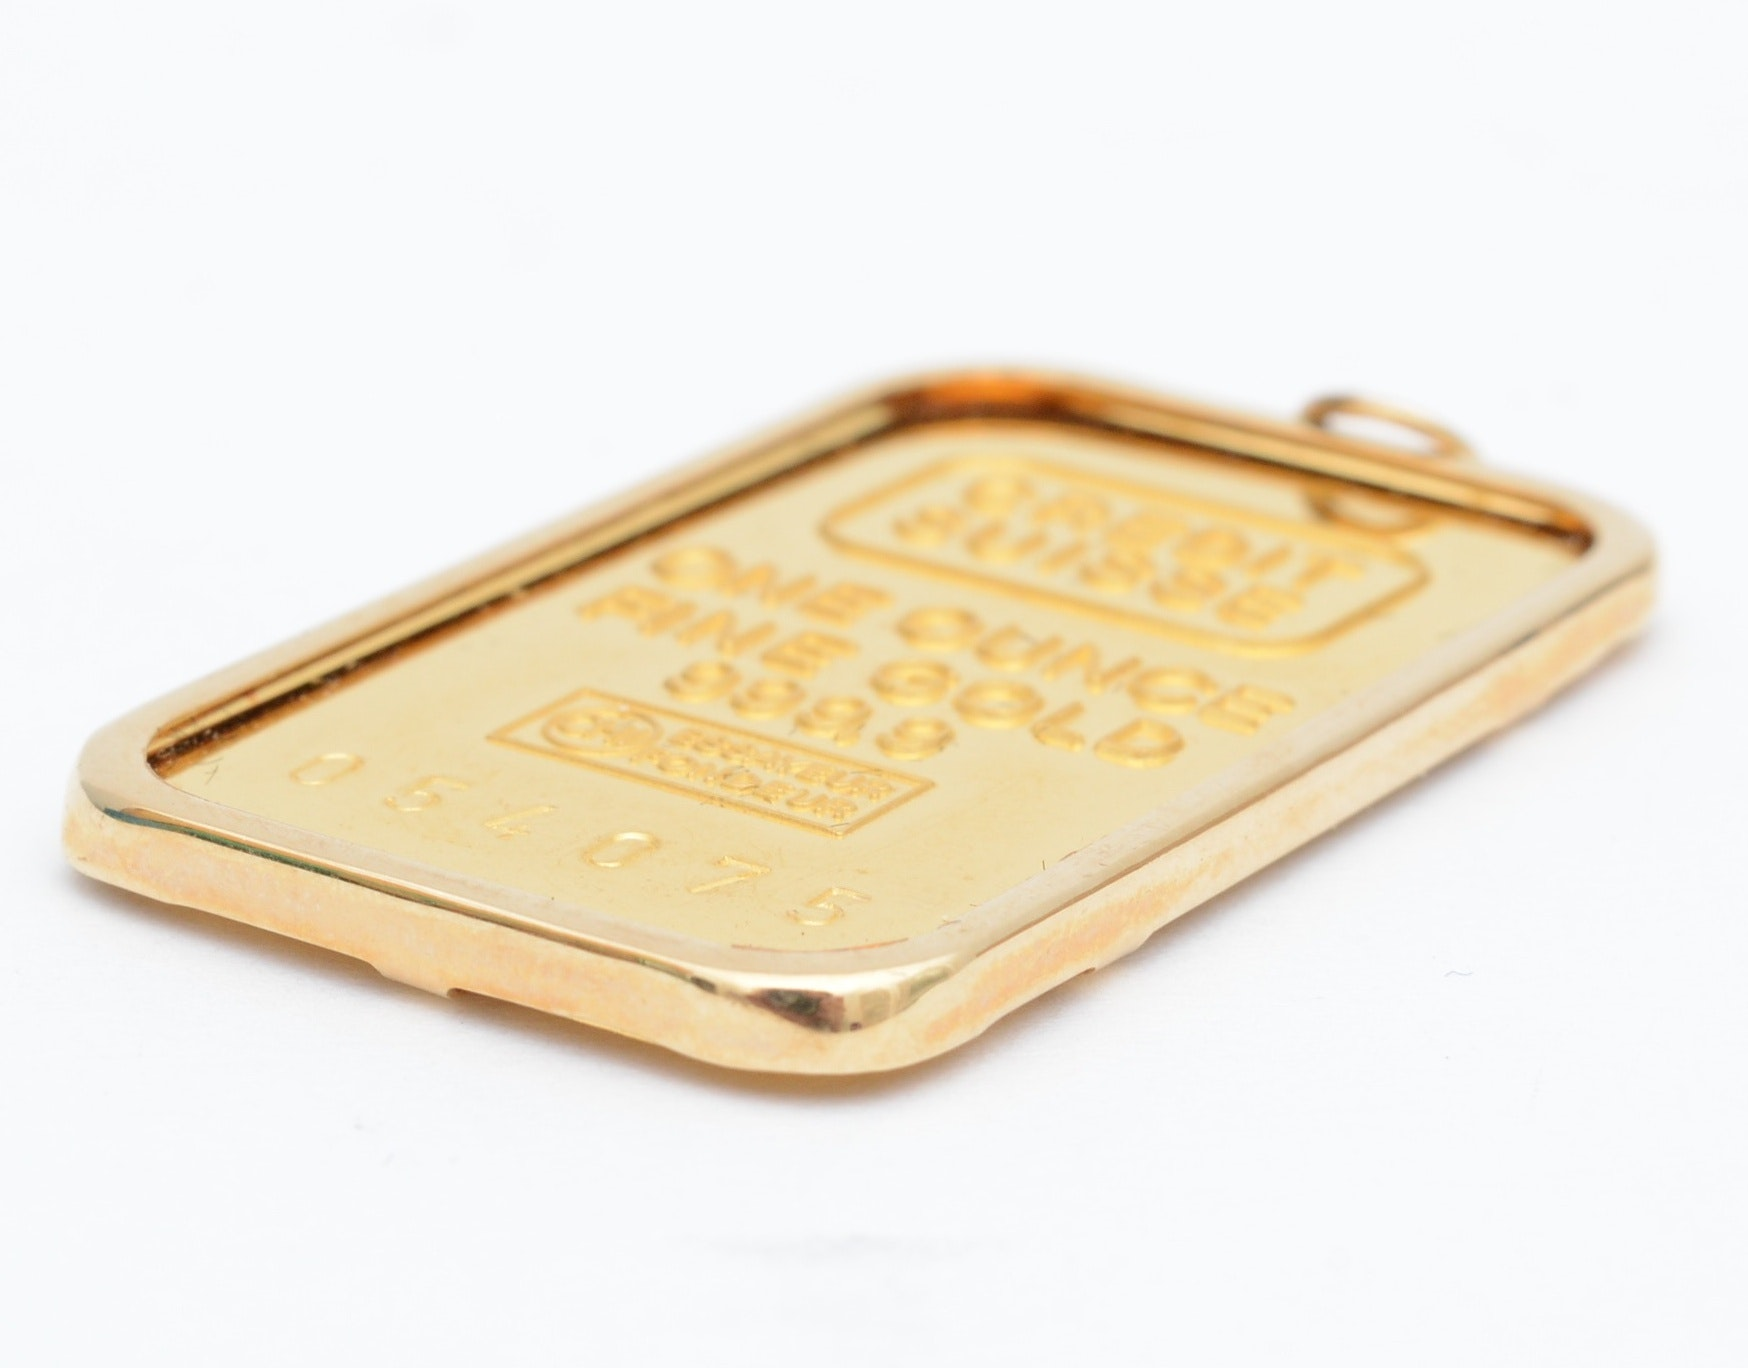 credit suisse fine gold essayeur fondeur 25 gram gold pamp bar features the image of fortuna with the iconic pamp suisse design and a purity of 24 karat fine gold all bars are inscribed with essayeur fondeur to guarantee their authenticity.